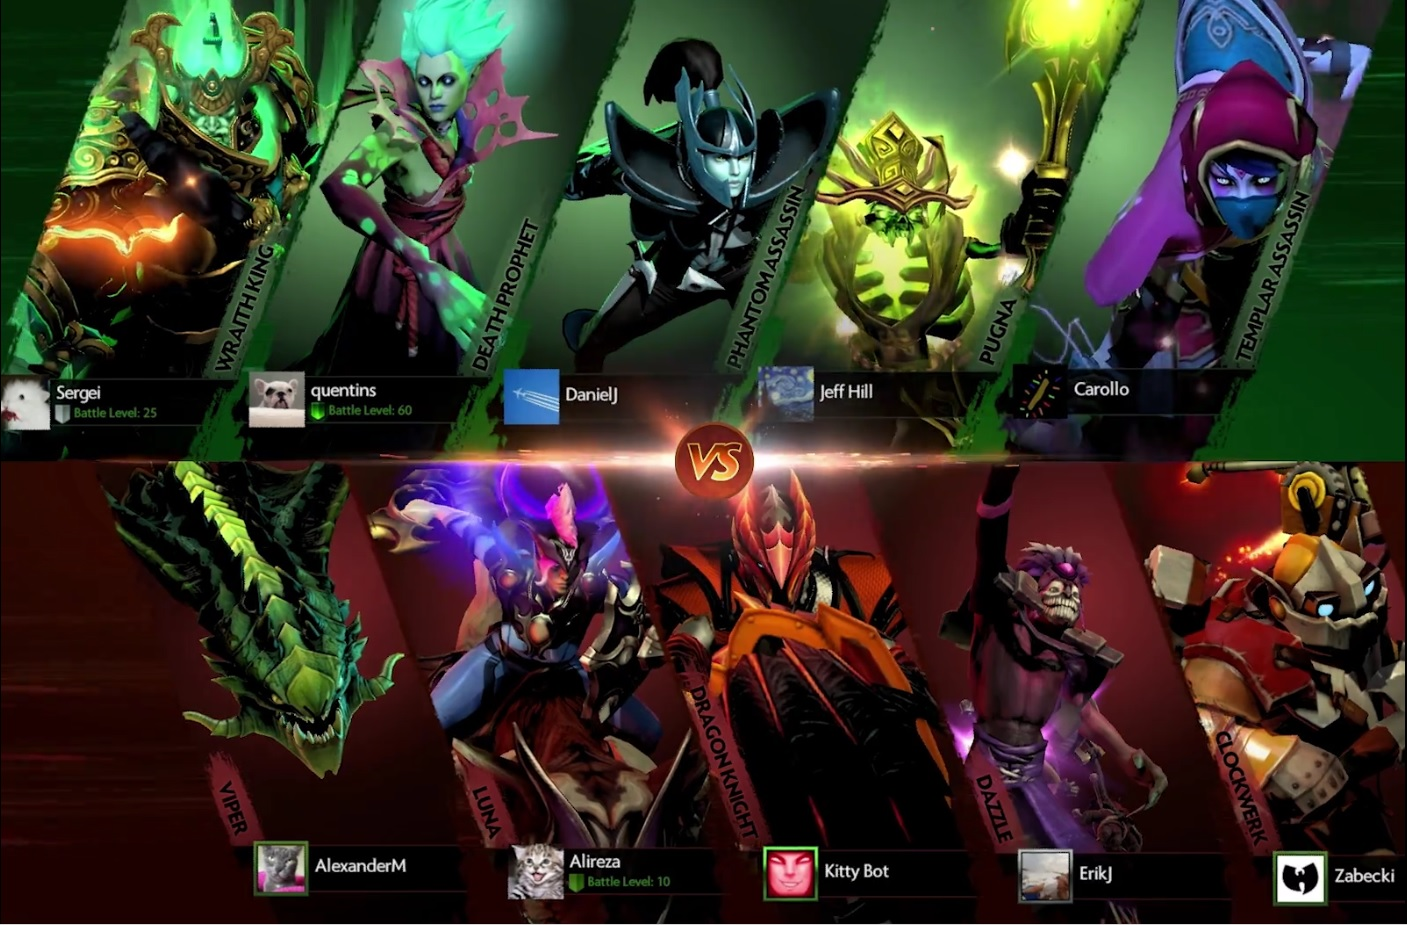 Dota 2 Immortal Treasure Ii Released And Prize Pool Soars: The Prize Pool For The International 2017 Is The Largest